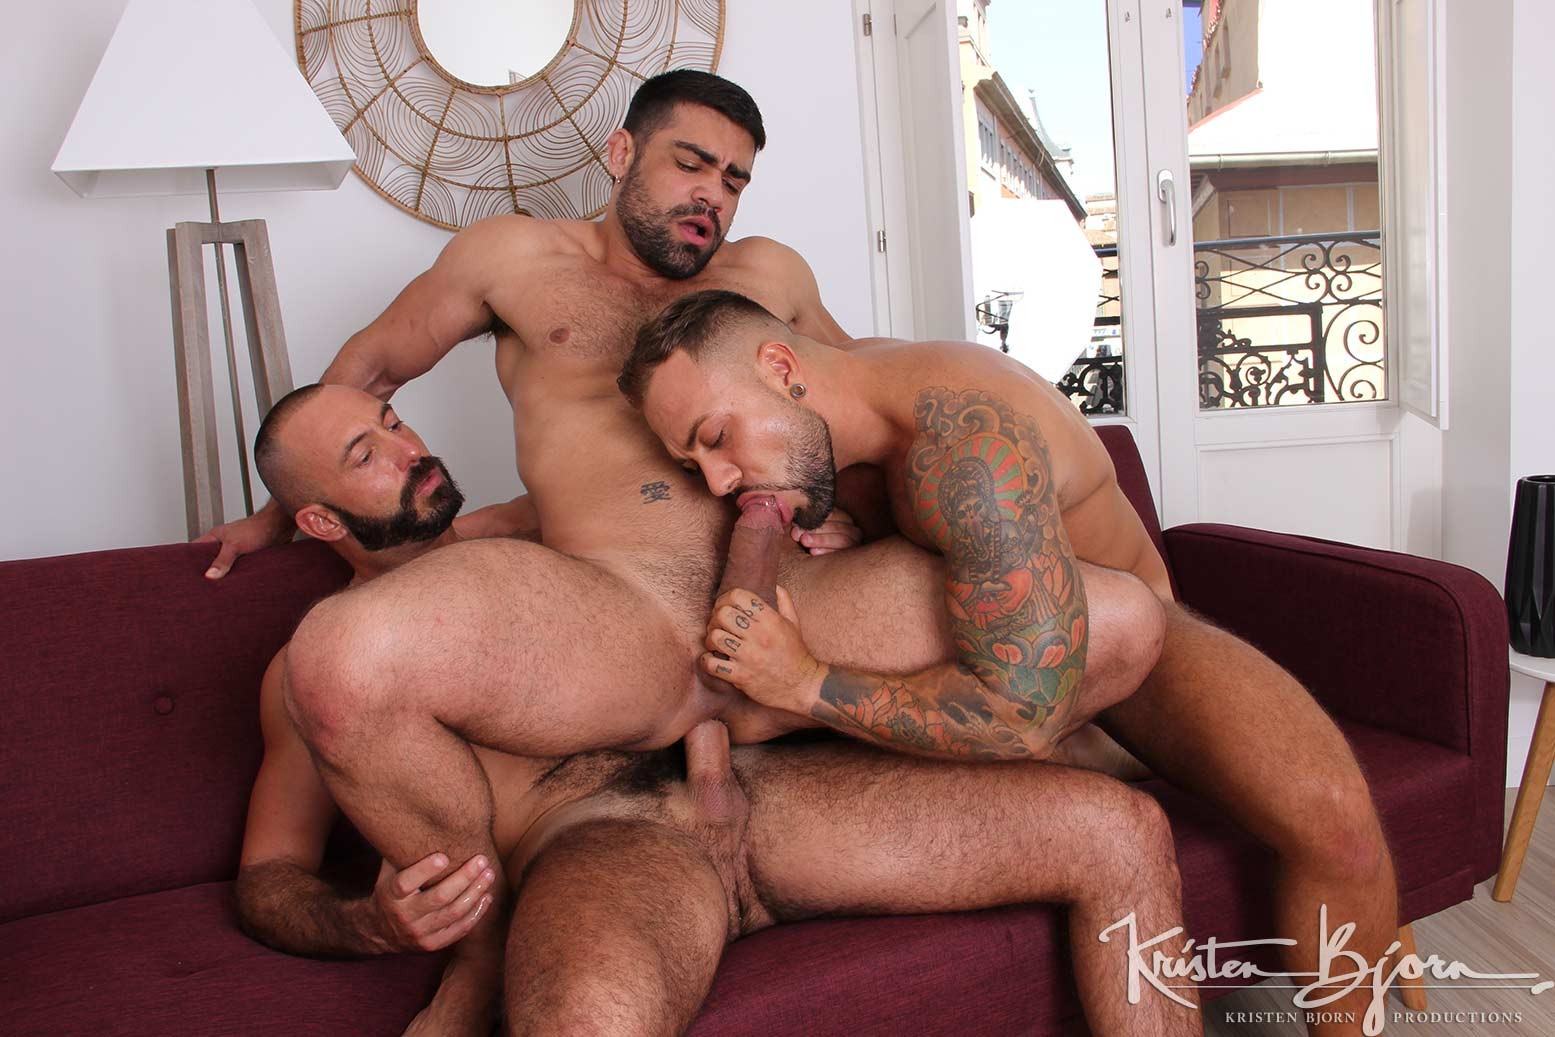 Stacy silver double penetration threesome-8186